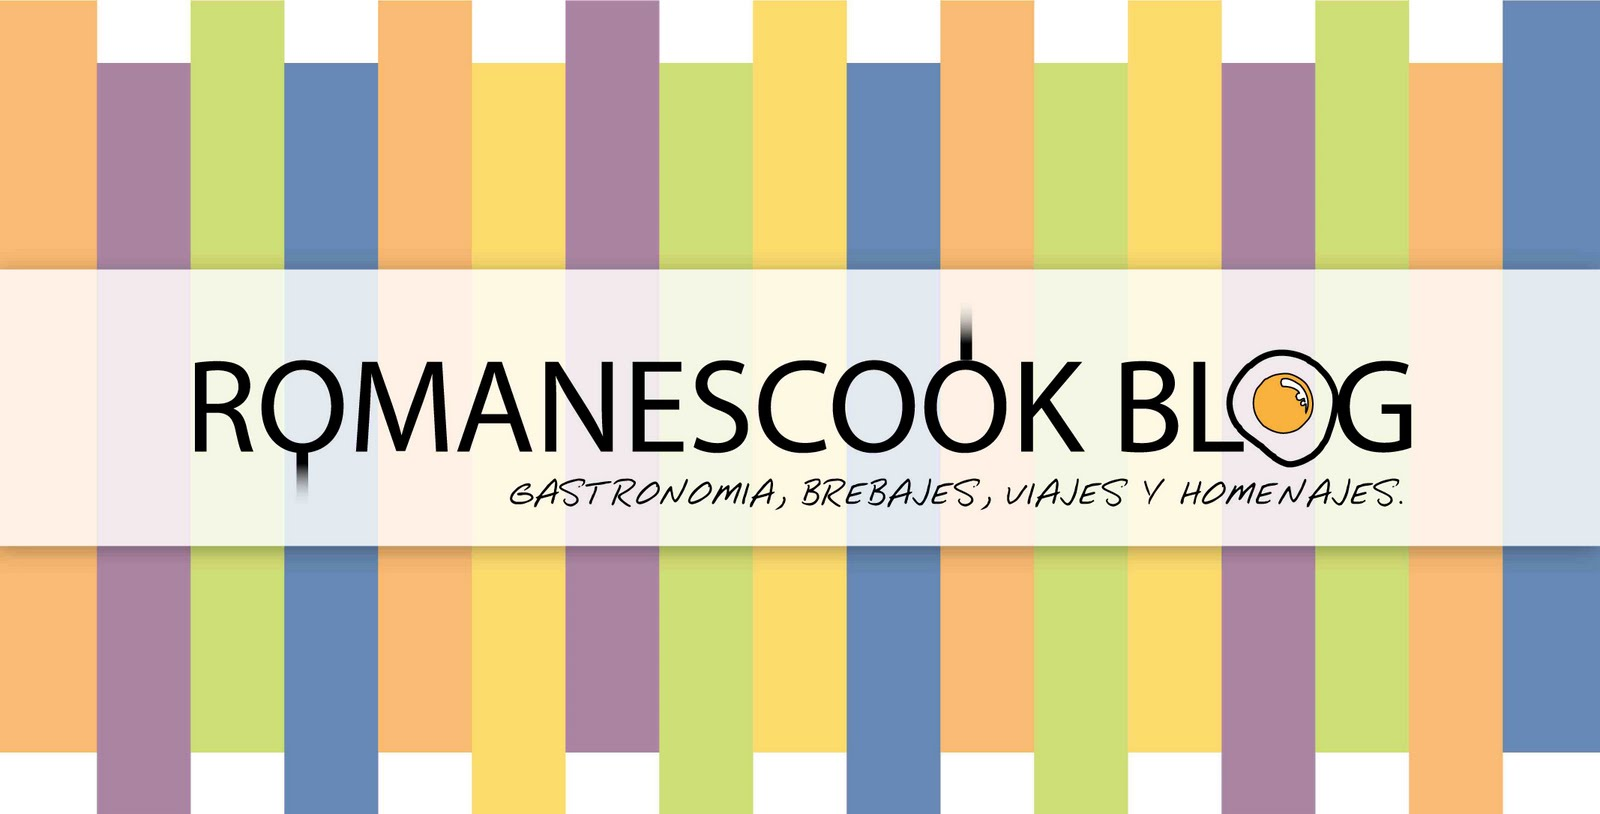 ROMANESCOOK BLOG